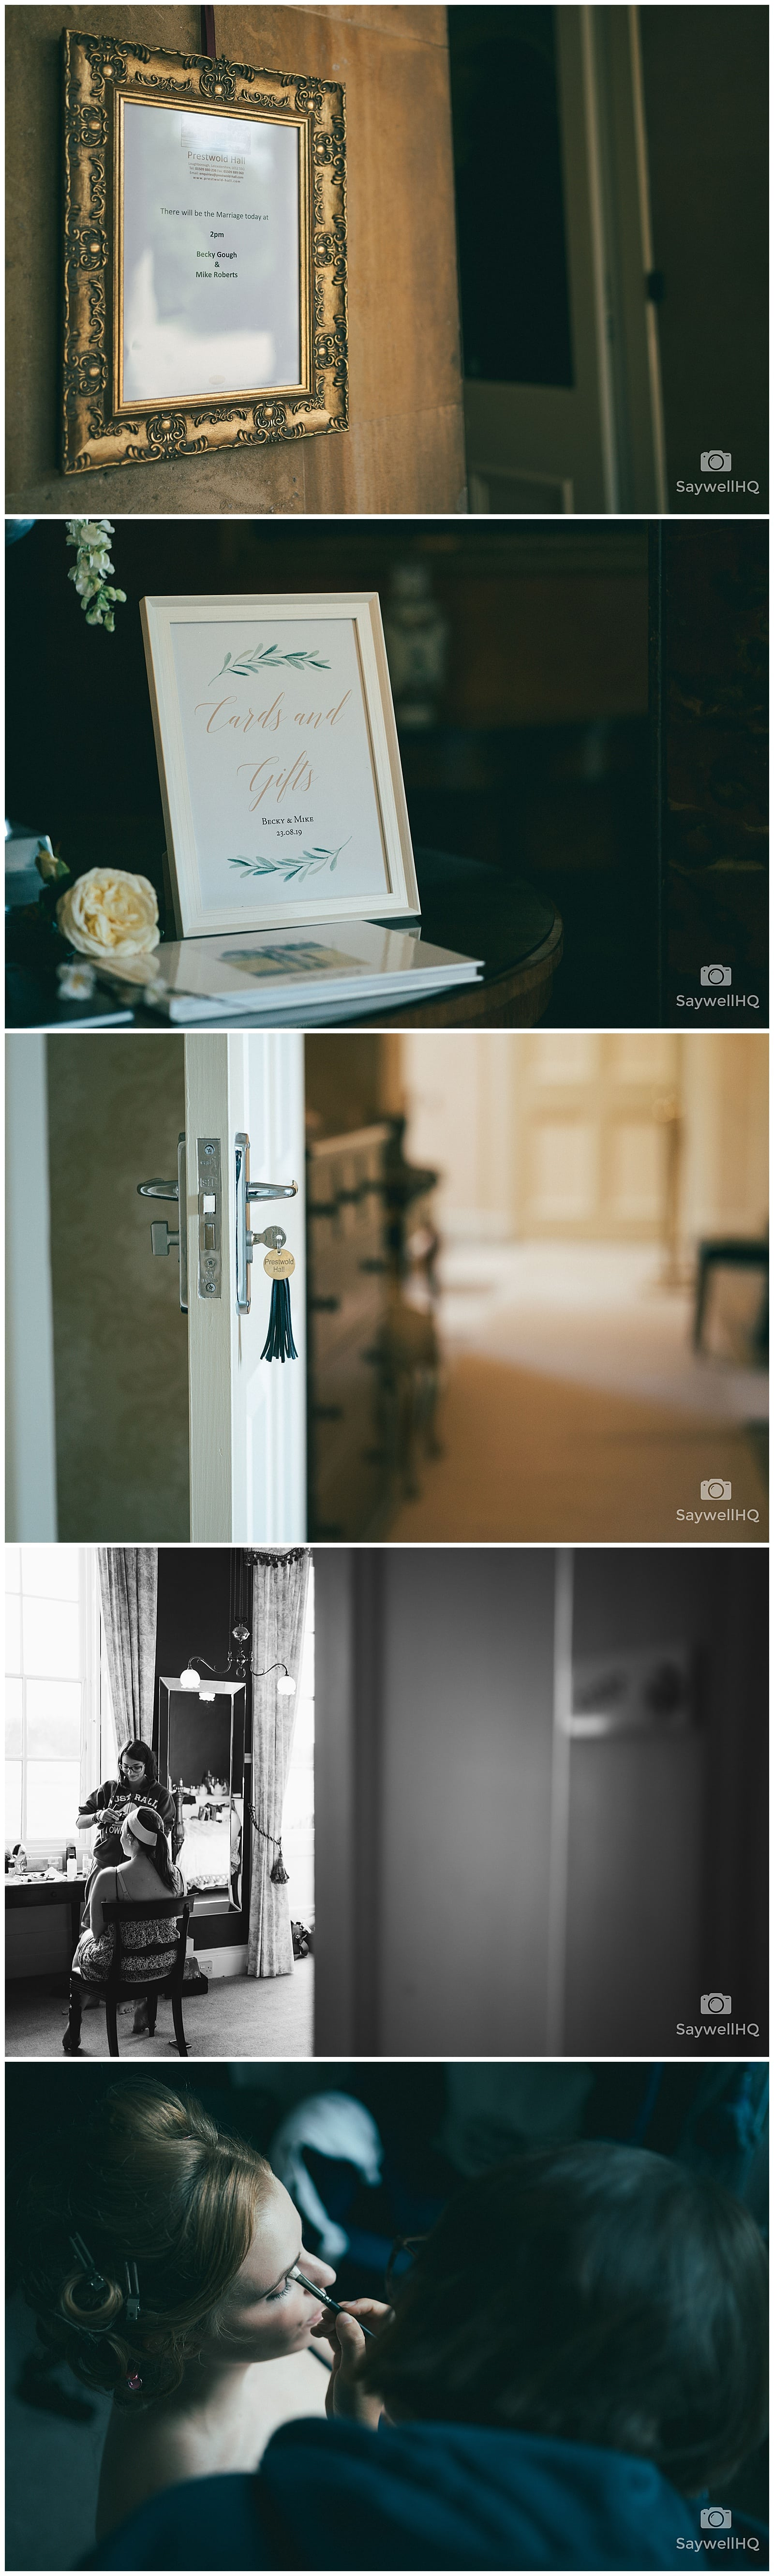 Wedding Photography at Prestwold Hall - bride and her bridesmaids getting ready in the morning of the wedding